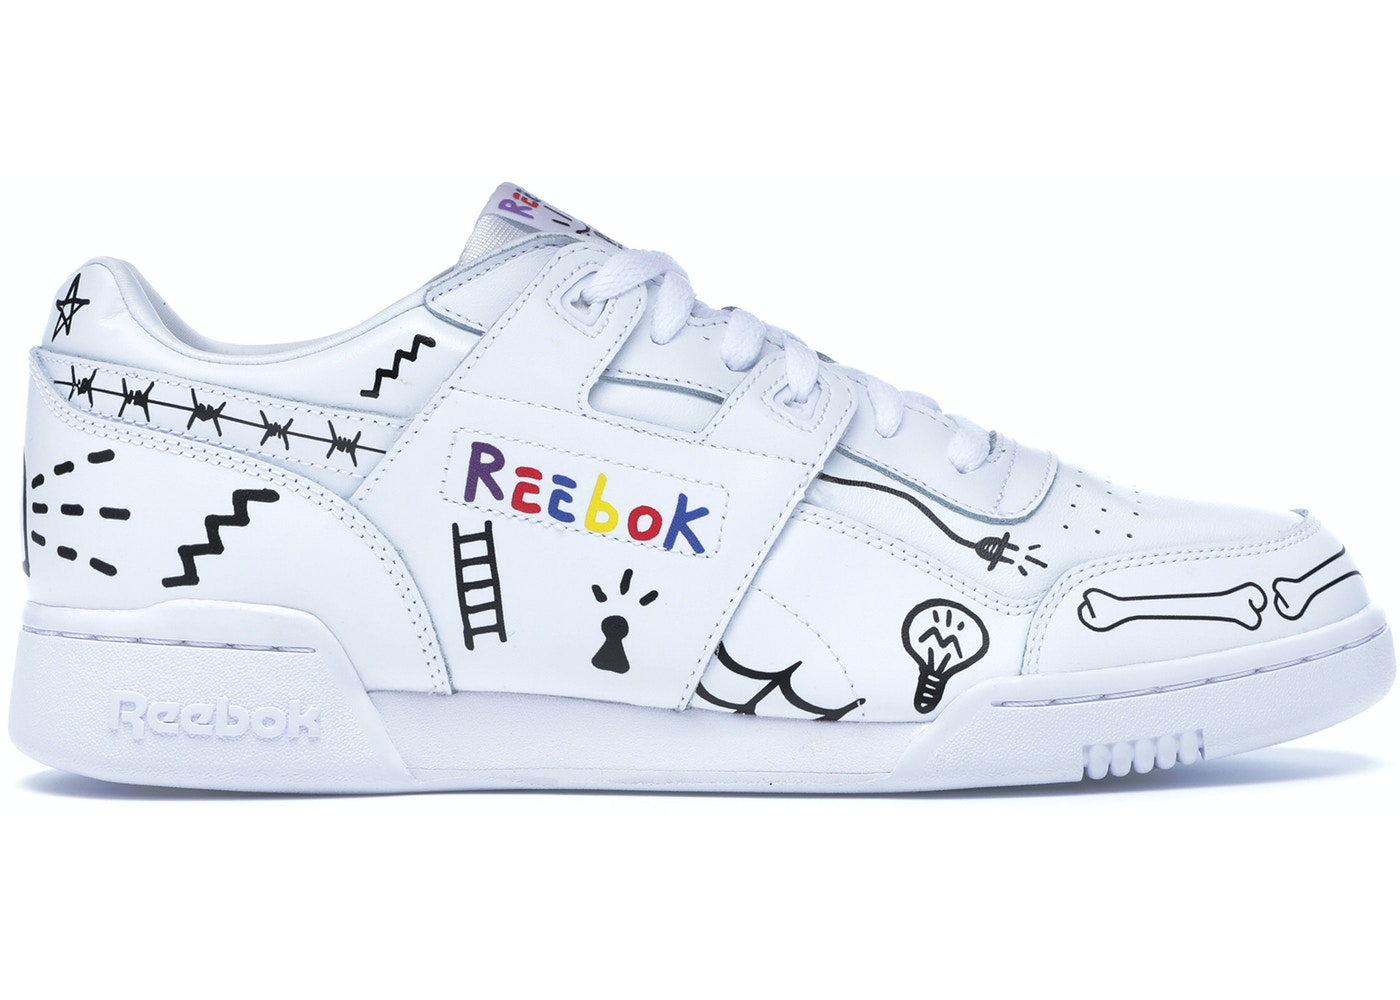 a67c08bac66 Reebok Workout Plus Trouble Andrew 3 AM - CN5896